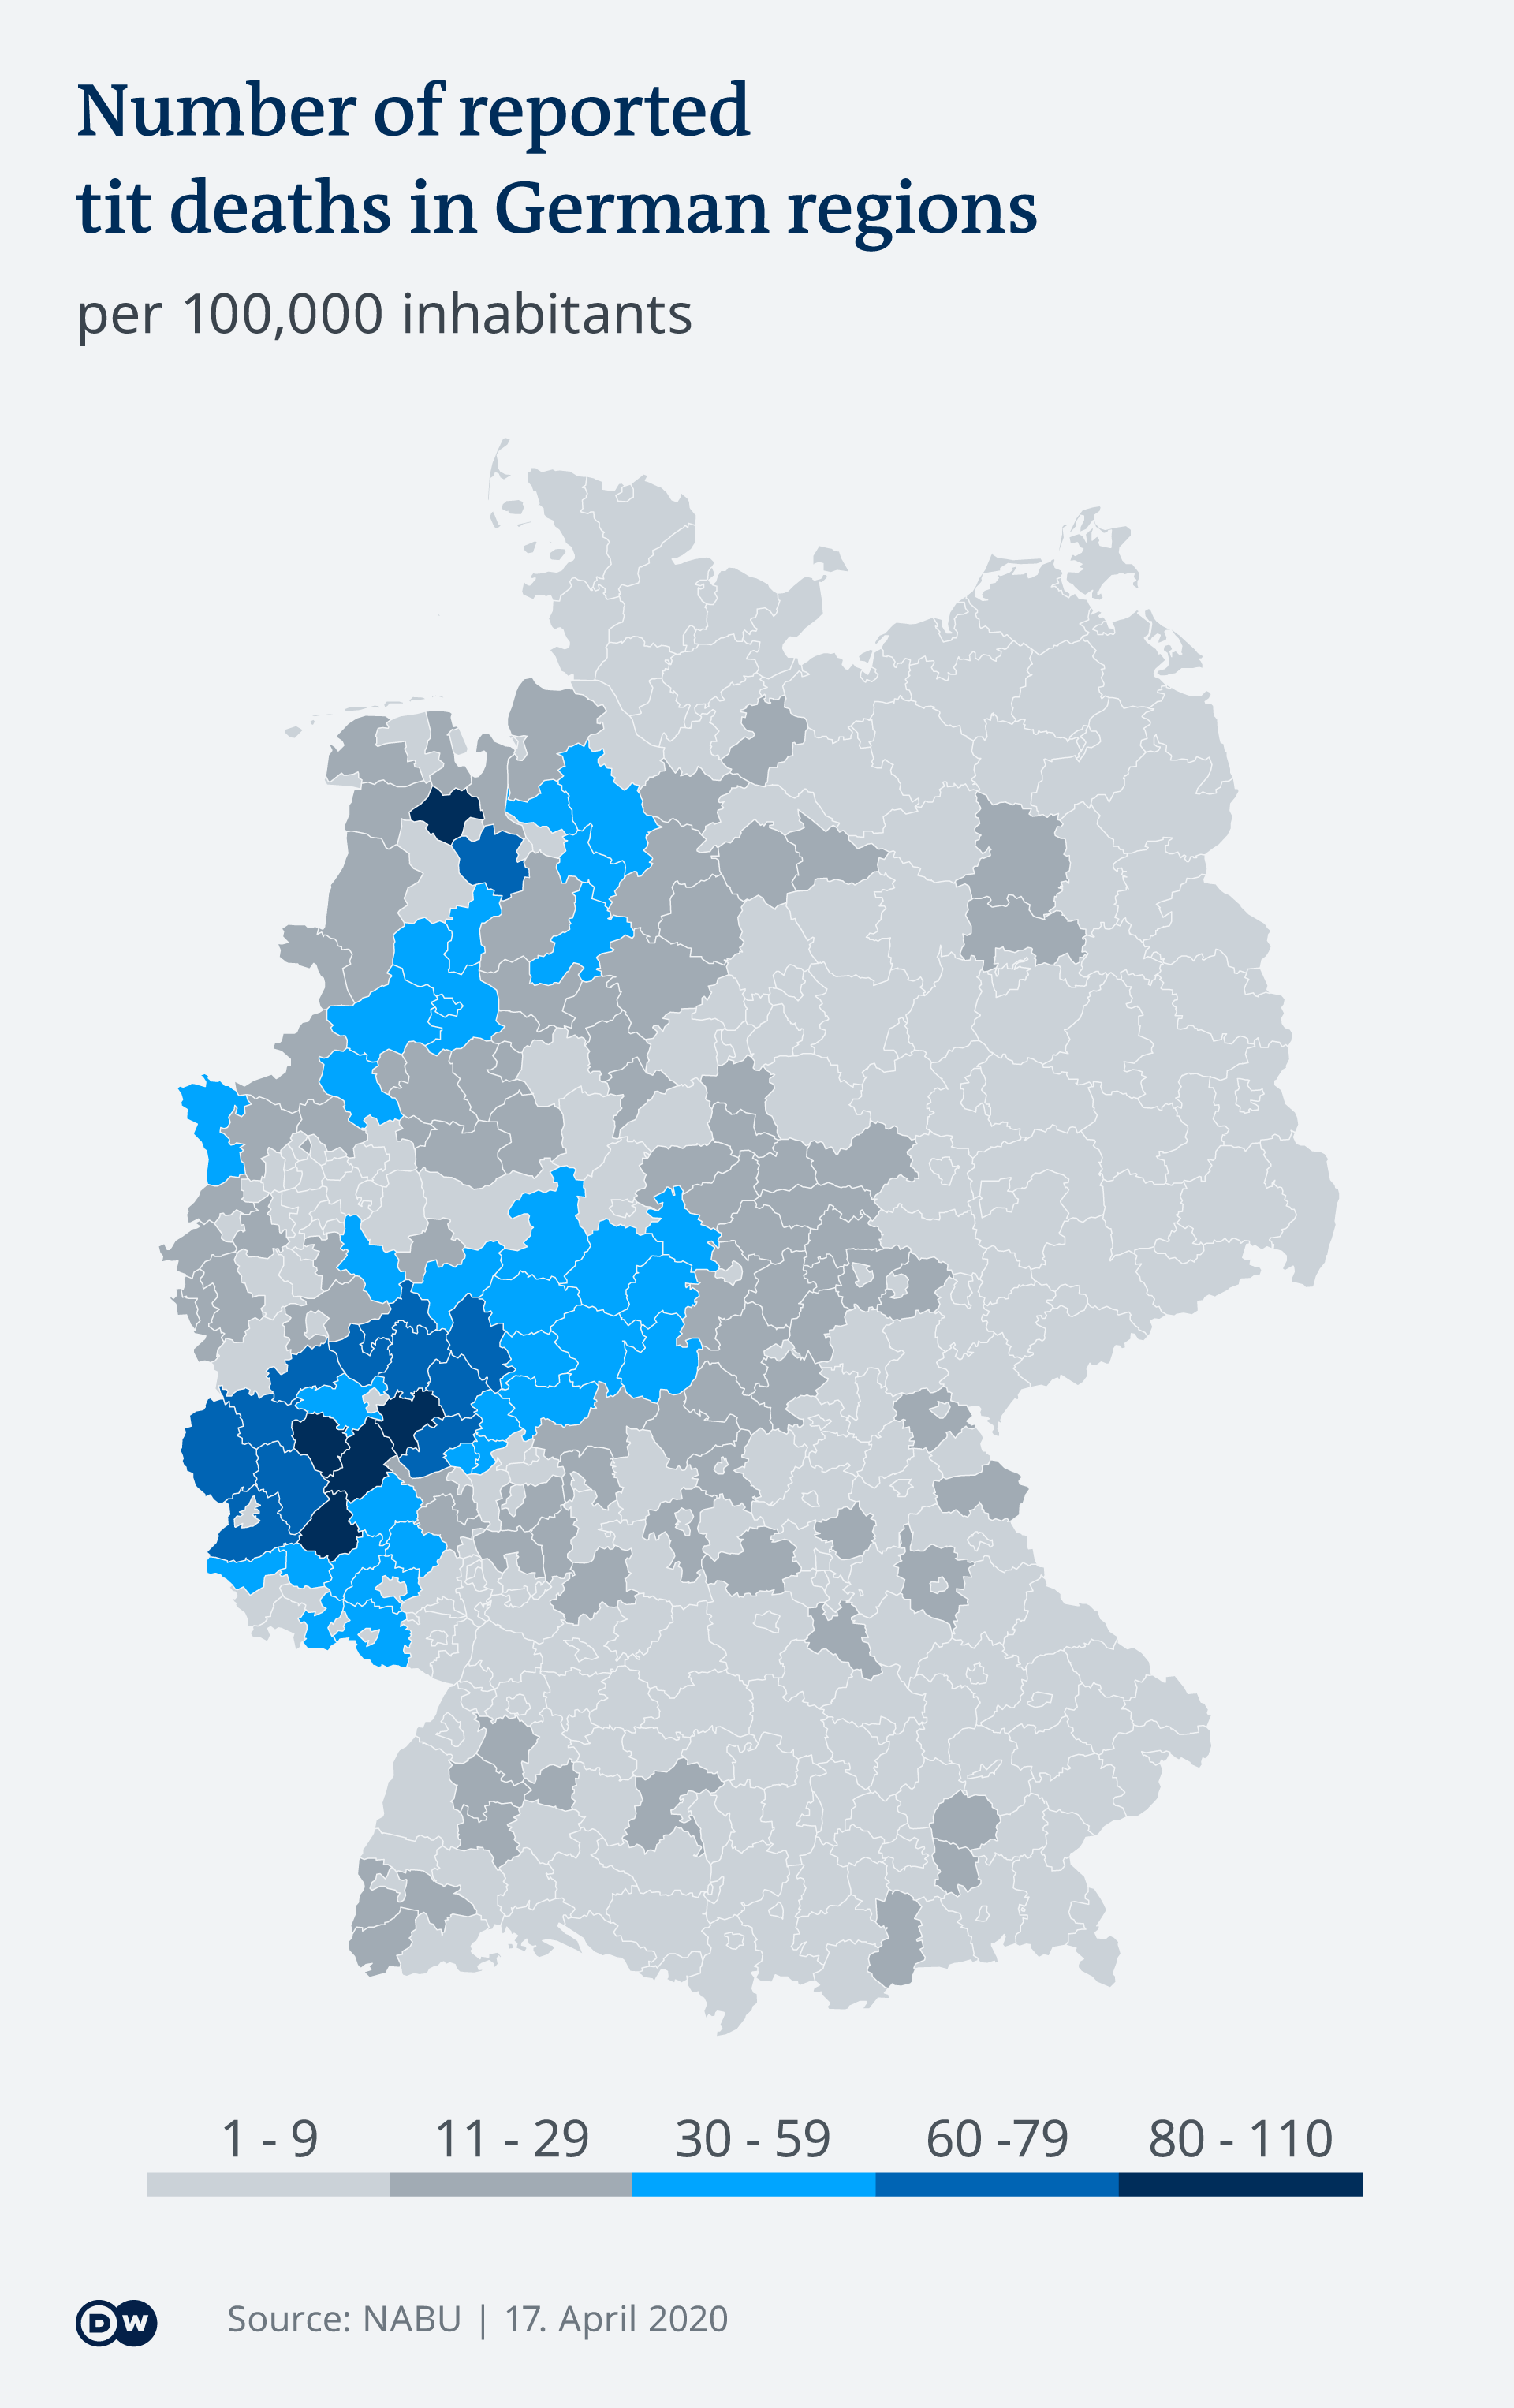 DW graphic showing the number of tit deaths by region in Germany.